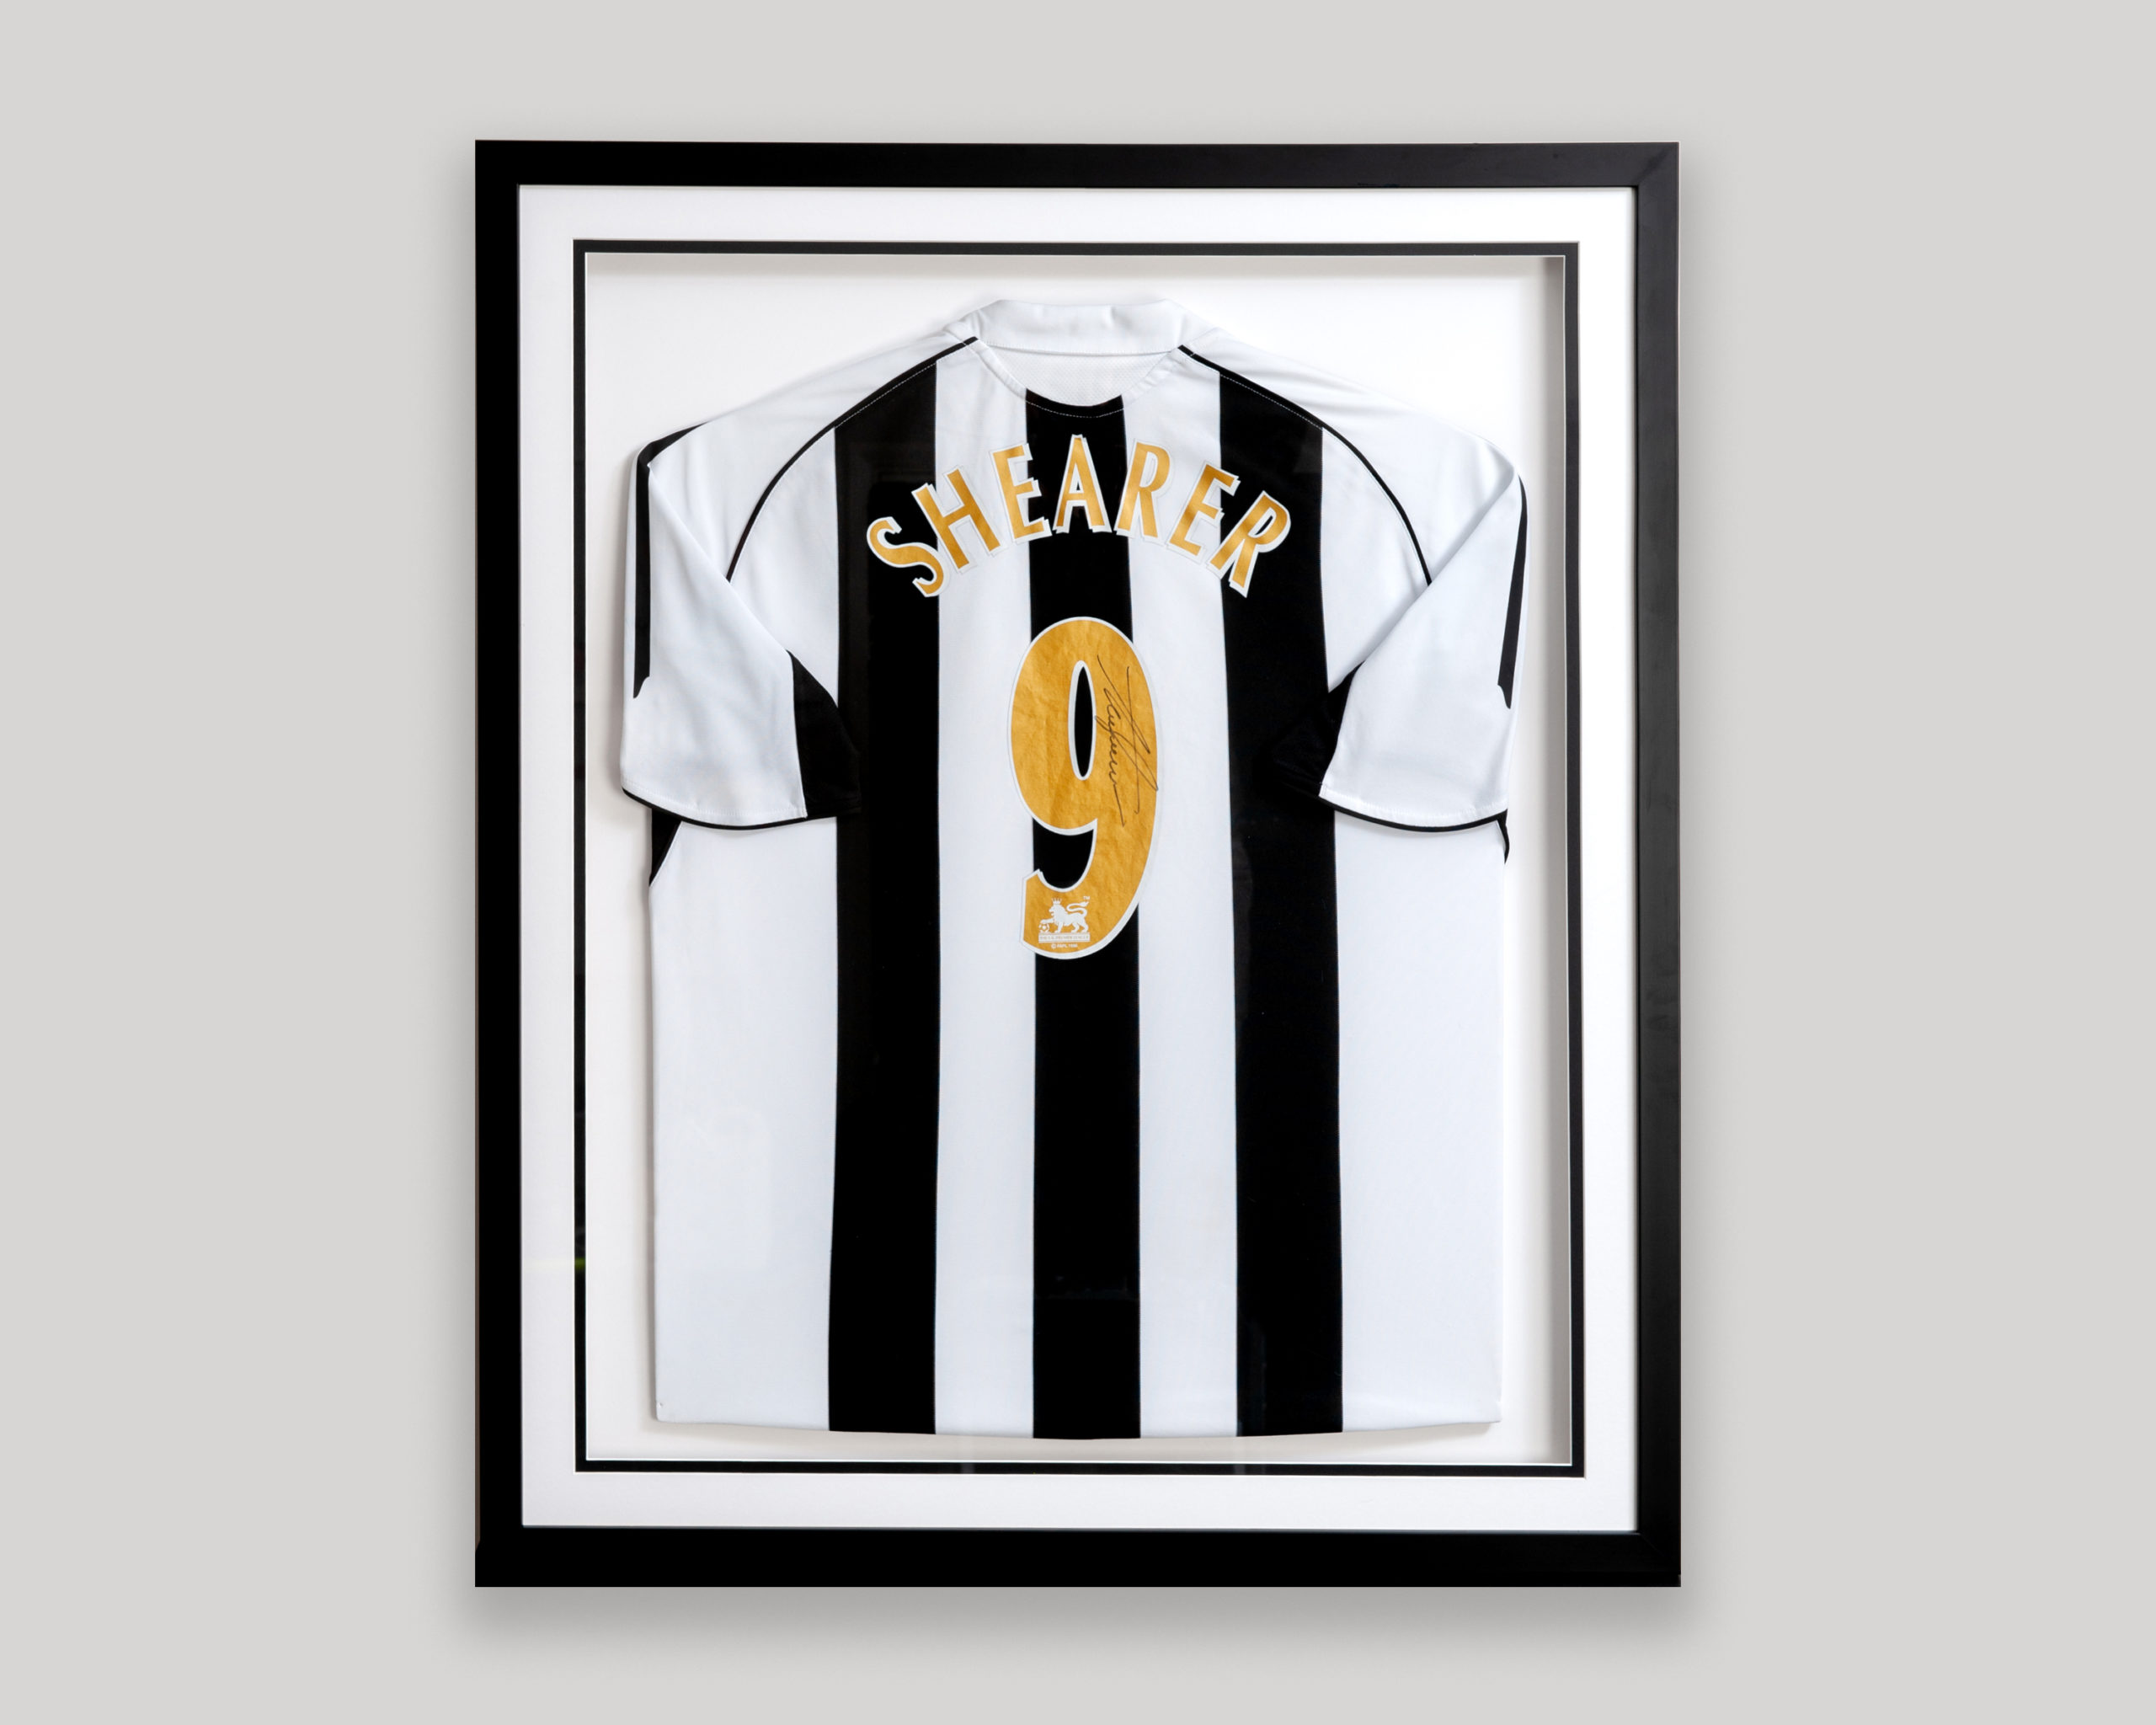 Framed Shearer Football Shirt